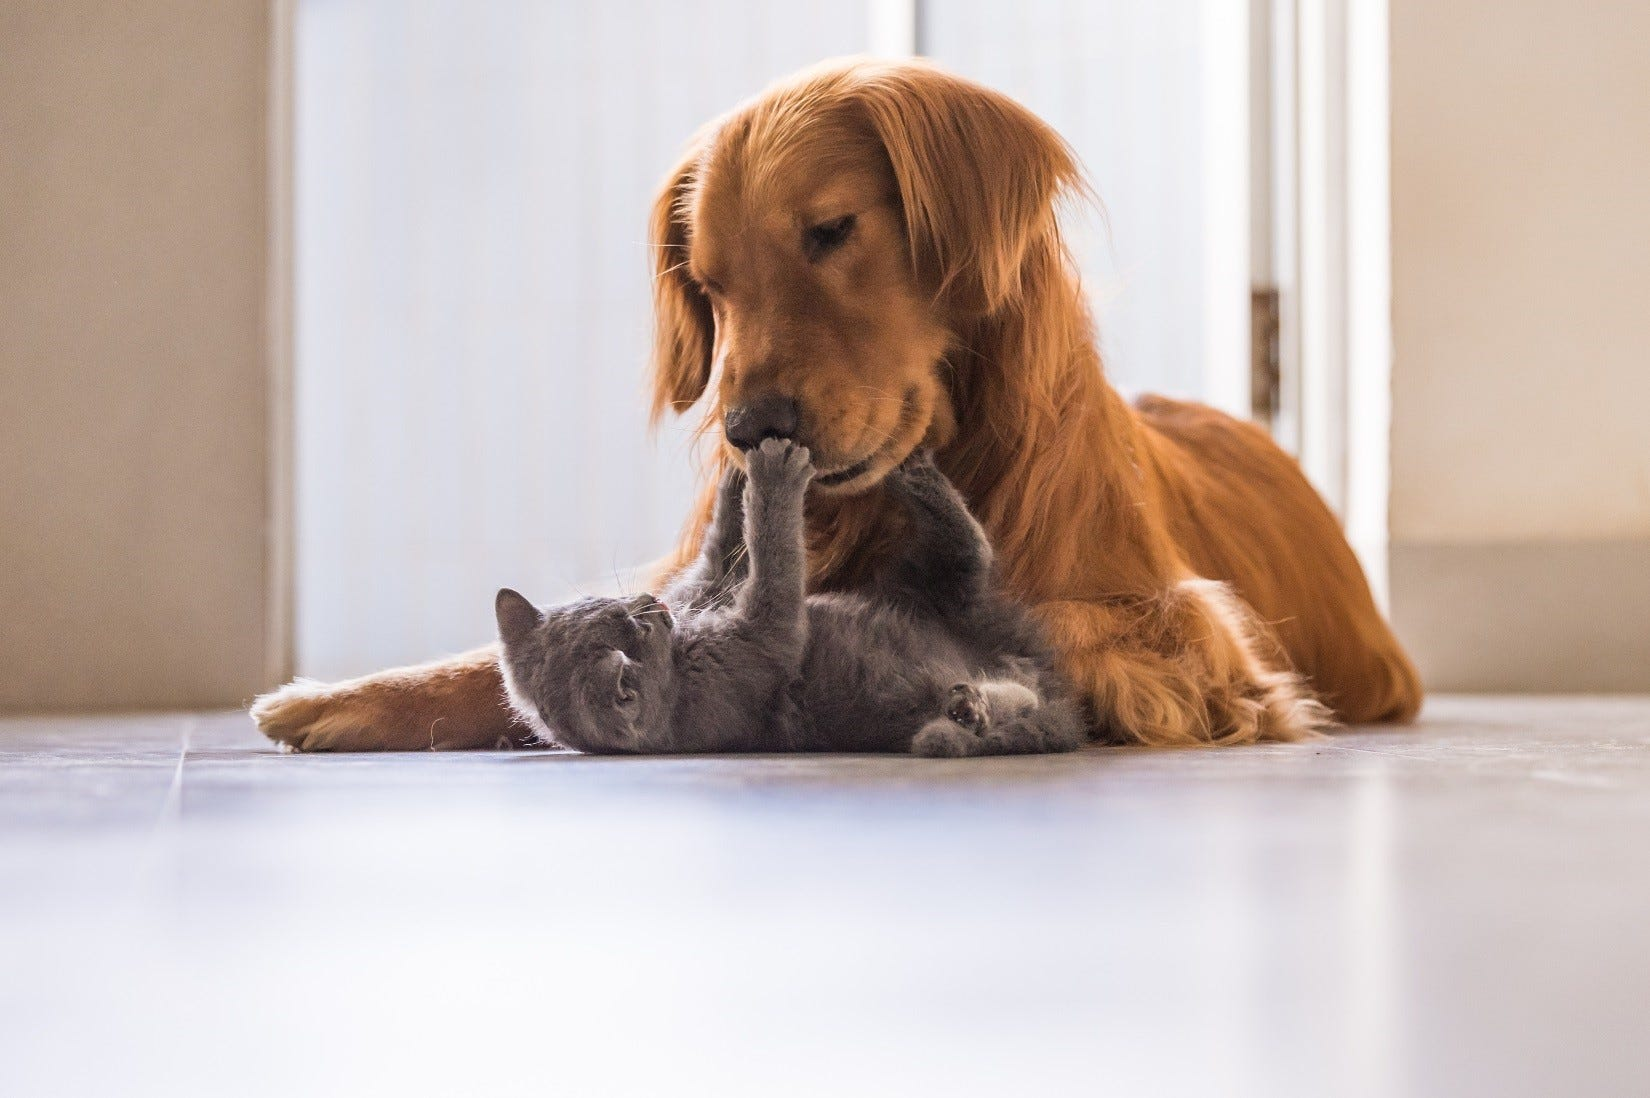 A dog and kitten playing